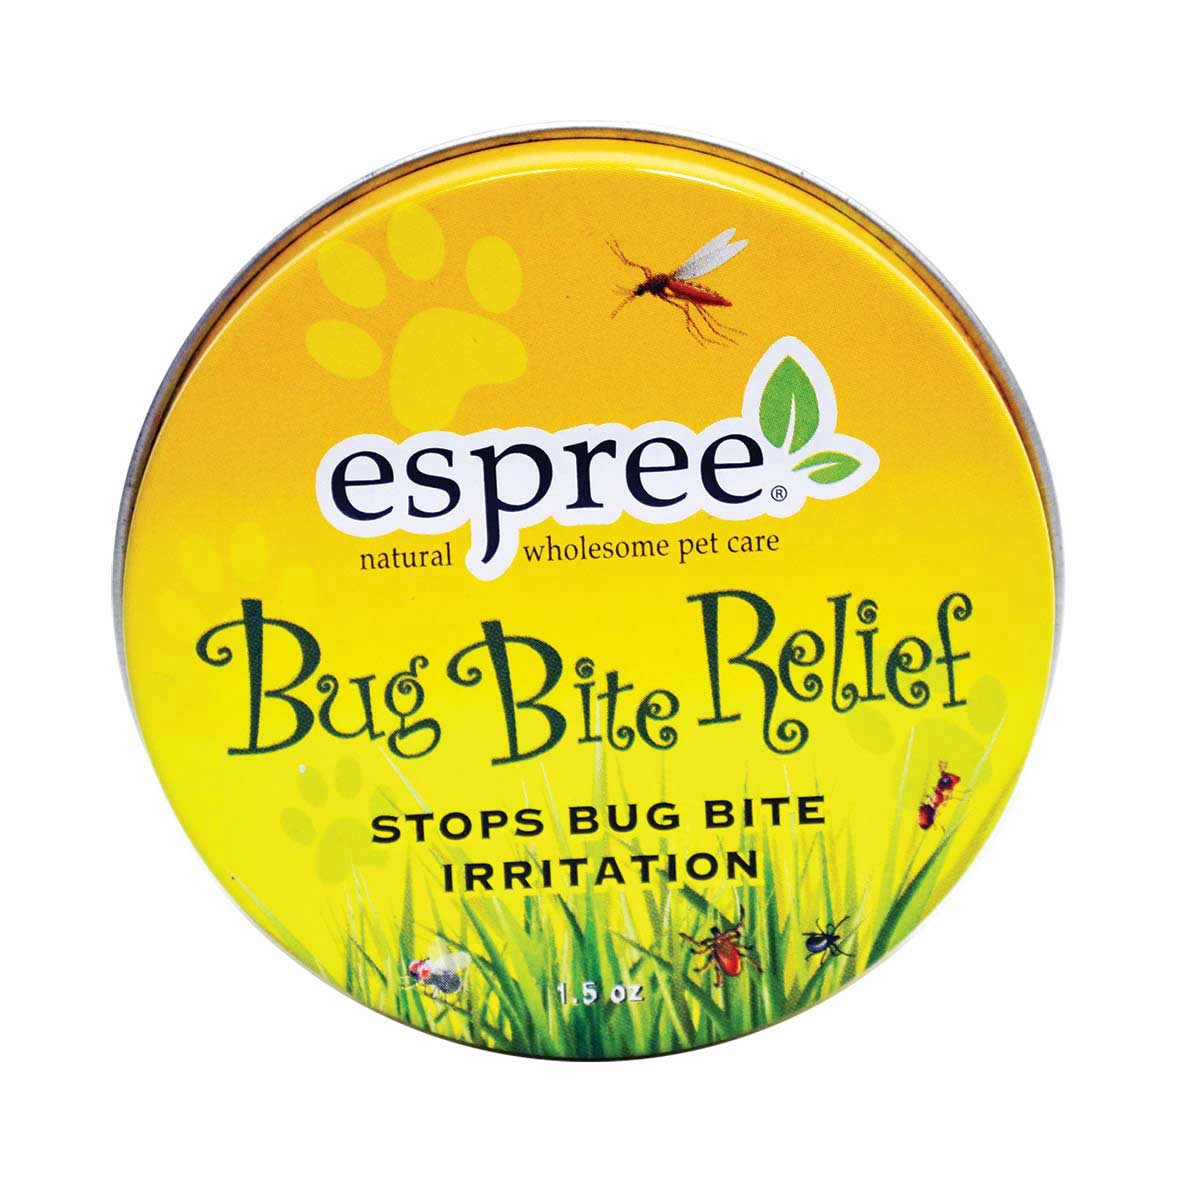 1.5 ounce Espree Bug Bite Relief - Stops Bug Bit Irritation for Dogs